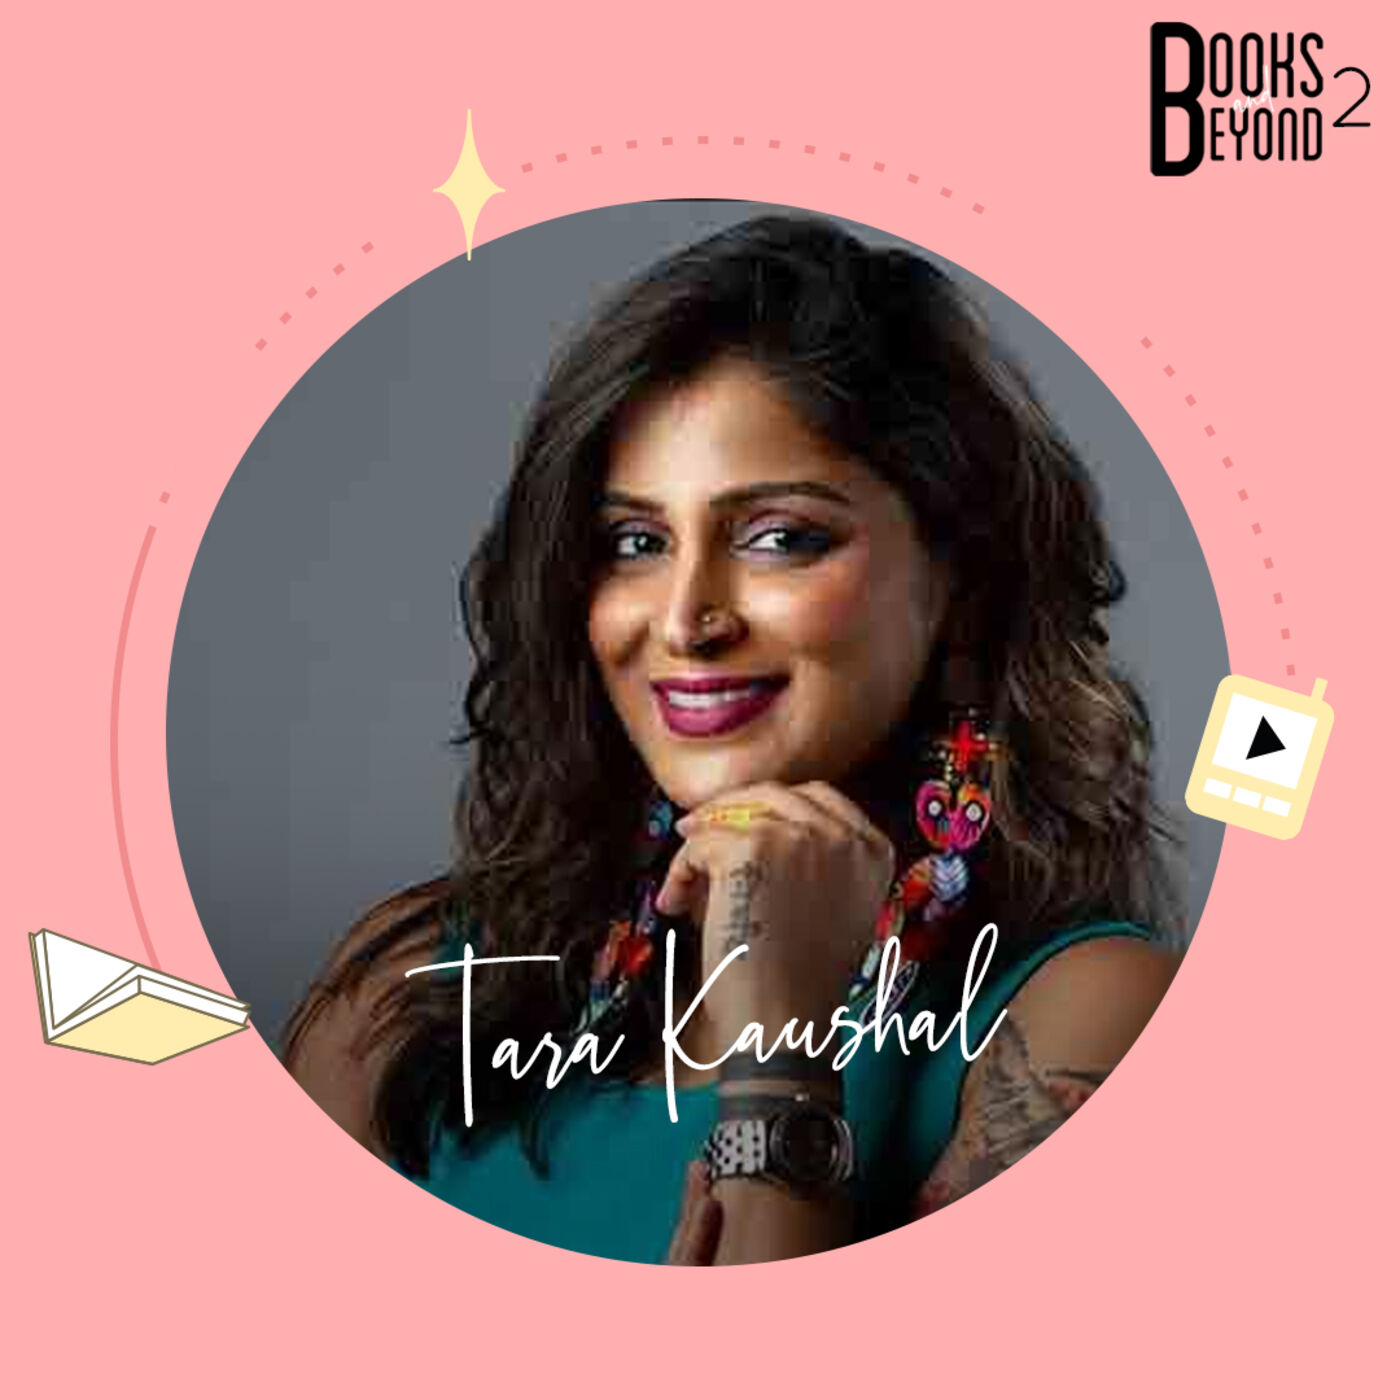 2.14: Tara Kaushal - Going Undercover To Find Out Why Men Rape